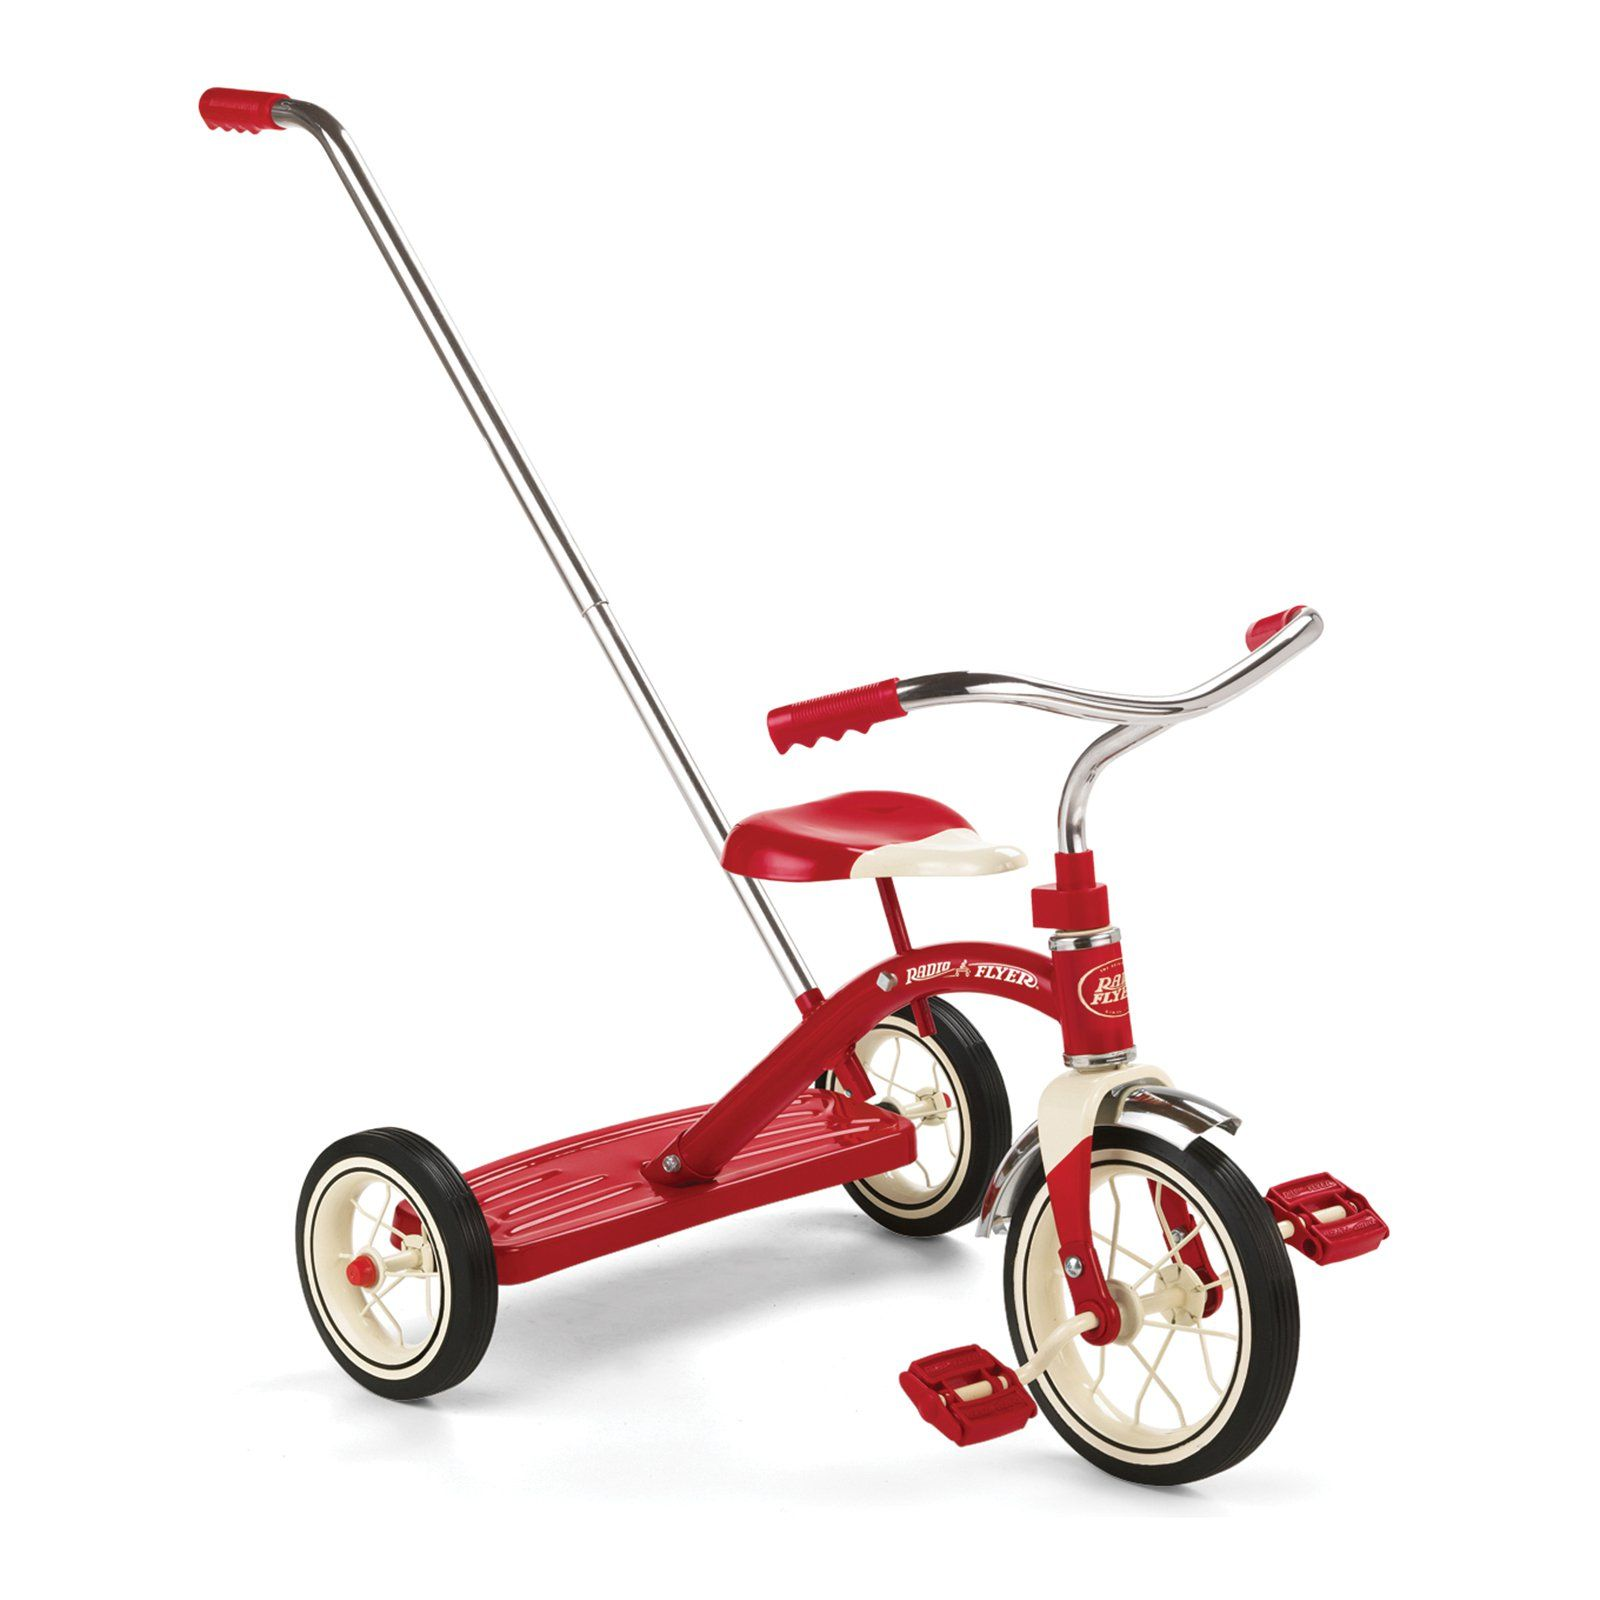 Have to have it. Radio Flyer 10 in. Classic Tricycle - Red - $59.99 @hayneedle